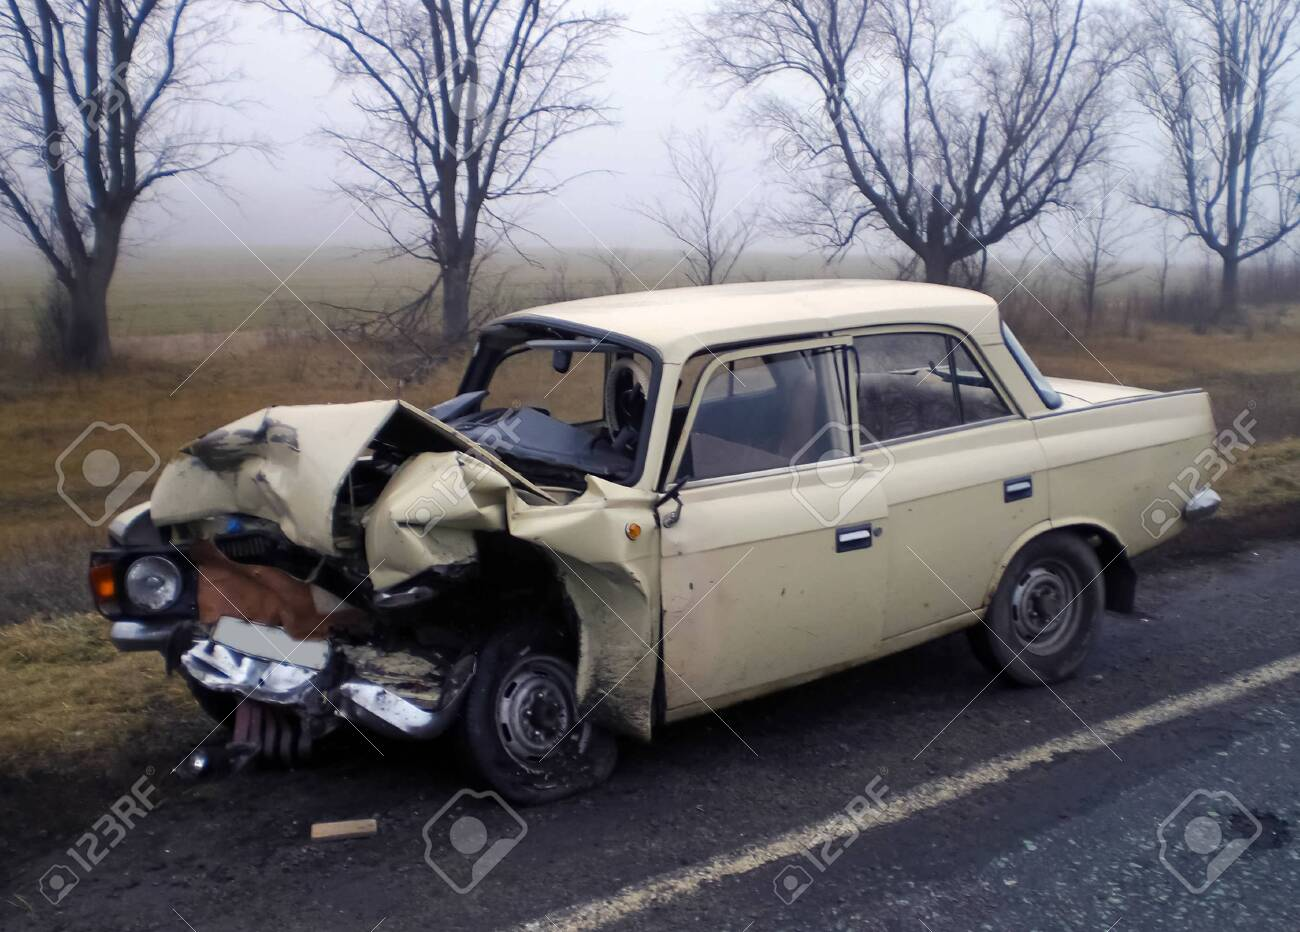 Consequences Of A Car Accident, A Wrecked Car. Road Traffic Accident. Stock  Photo, Picture And Royalty Free Image. Image 120109138.